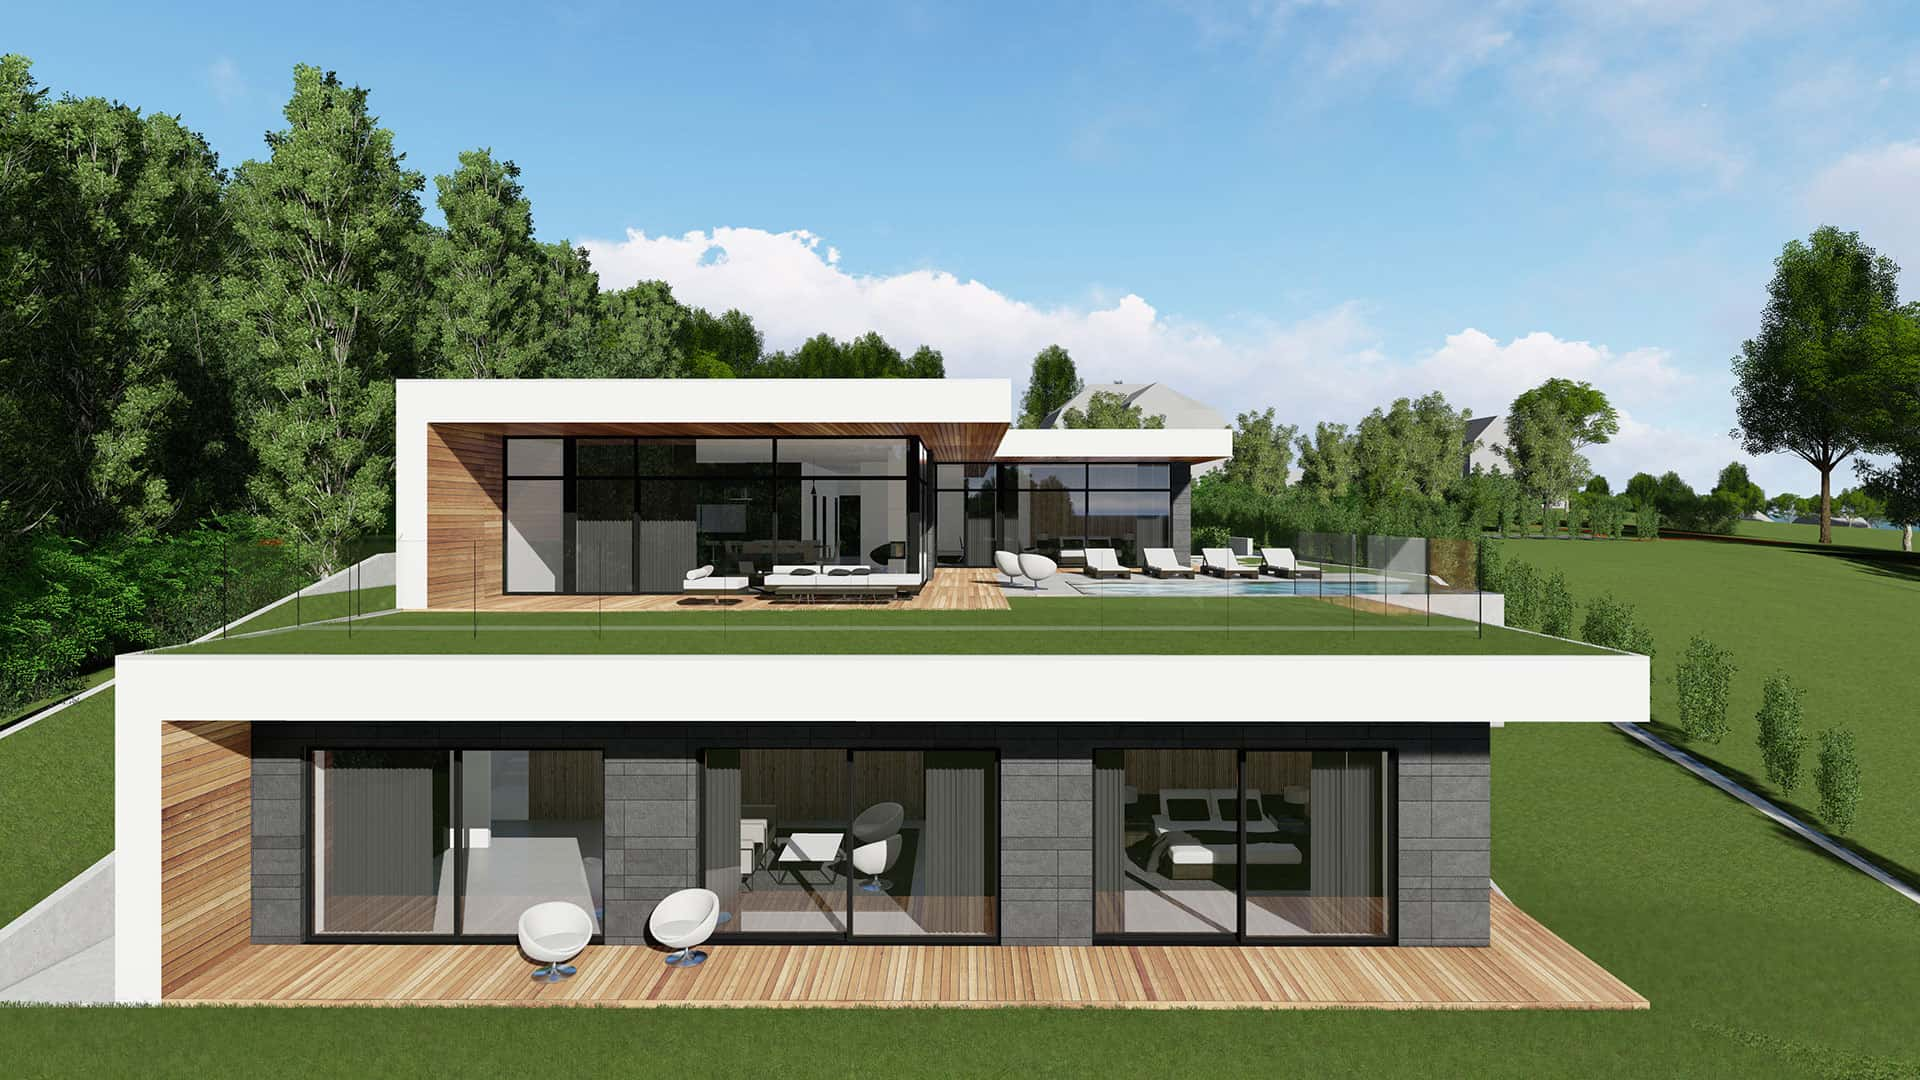 Modern Unexpected Concrete Flat Roof House Plans. Side view of the two-storey villa in Sweden